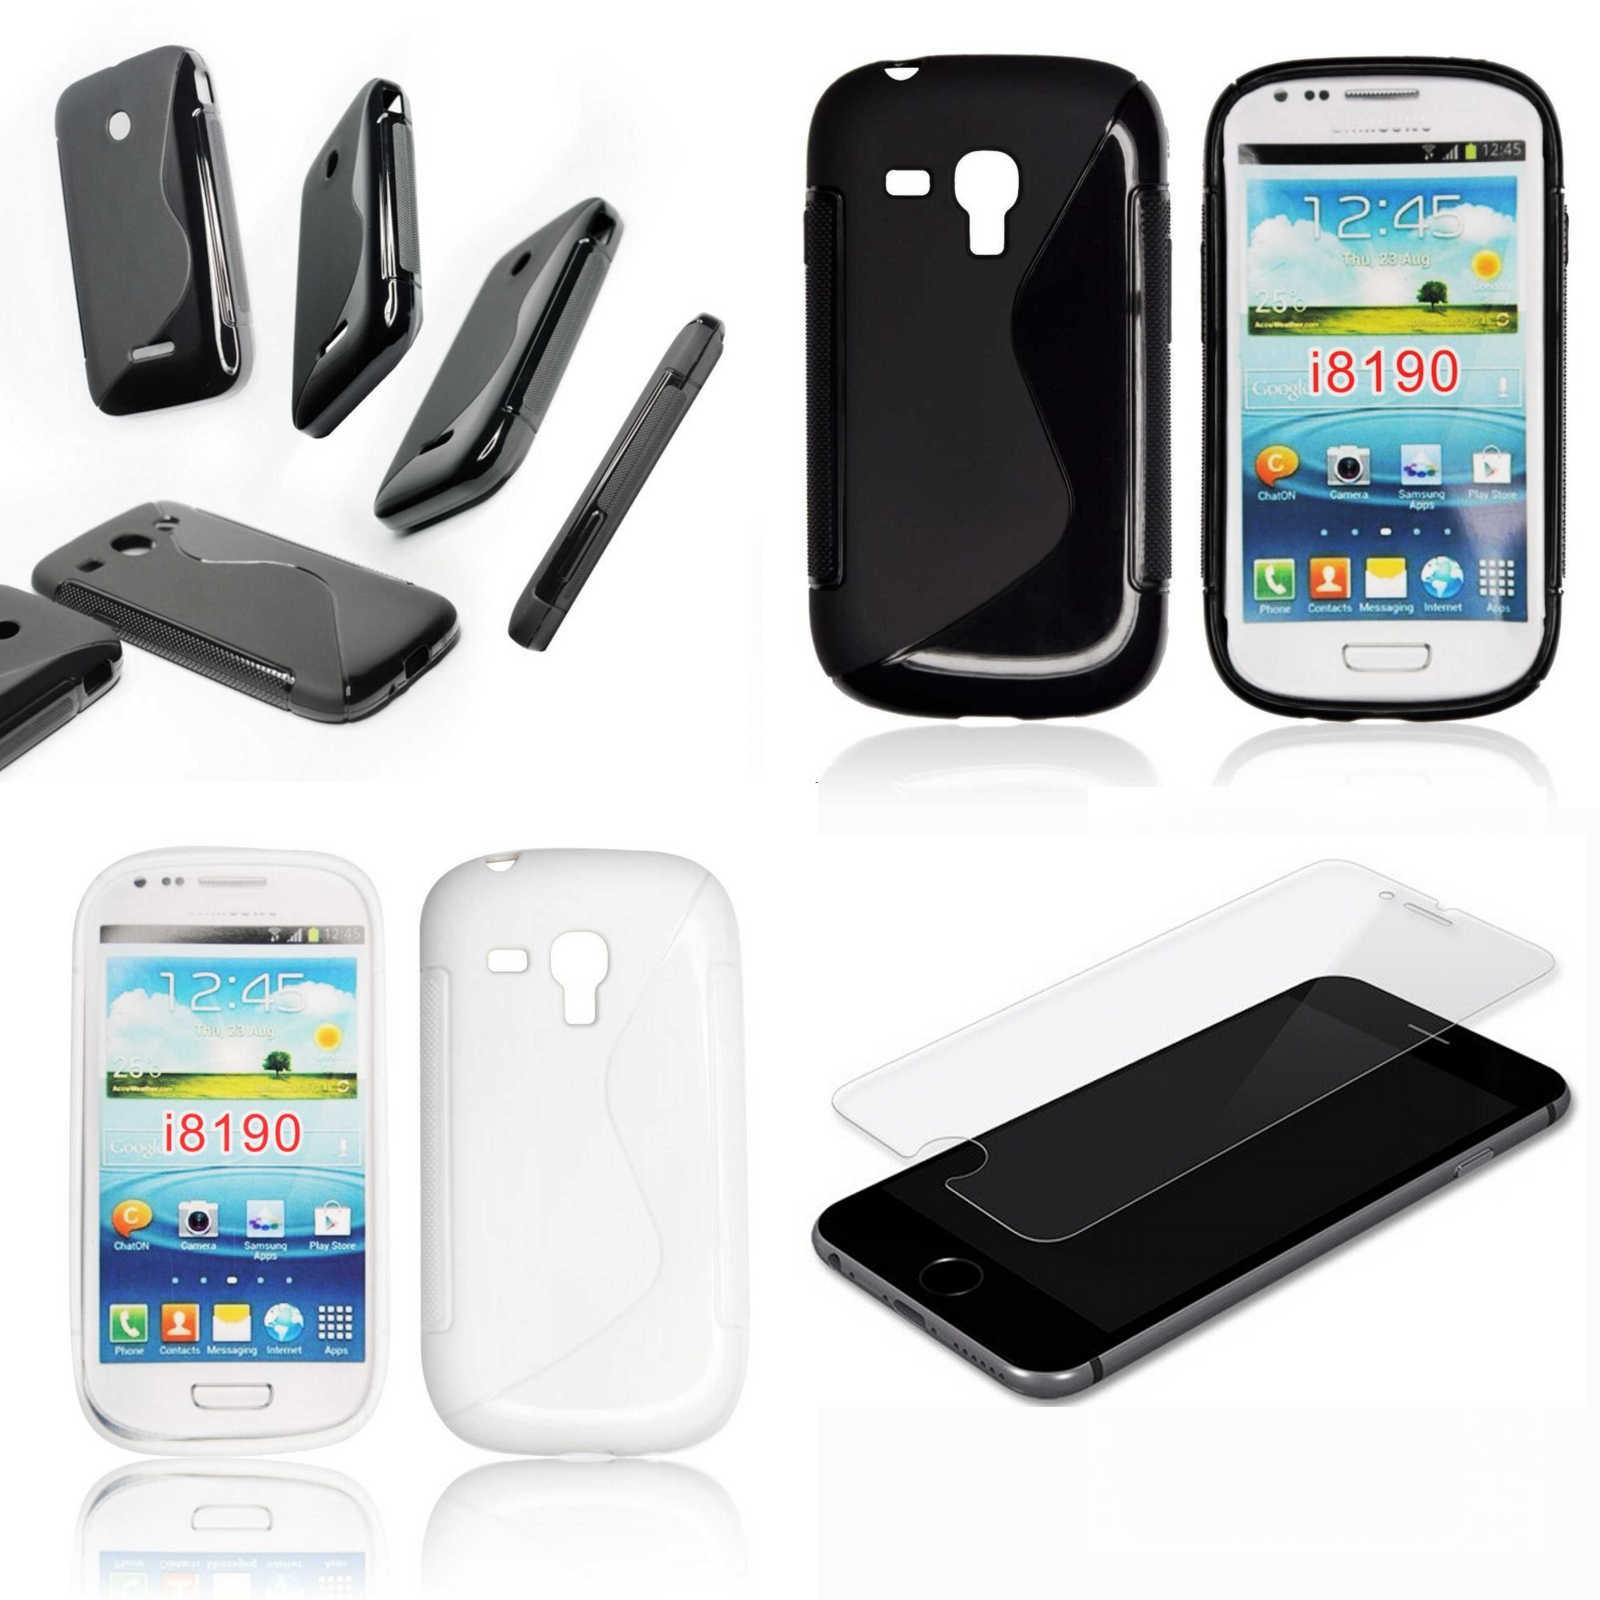 Holzplatte Dünn tempered glass und apple i phone h9 echtglas protector mobilphone handy ebay